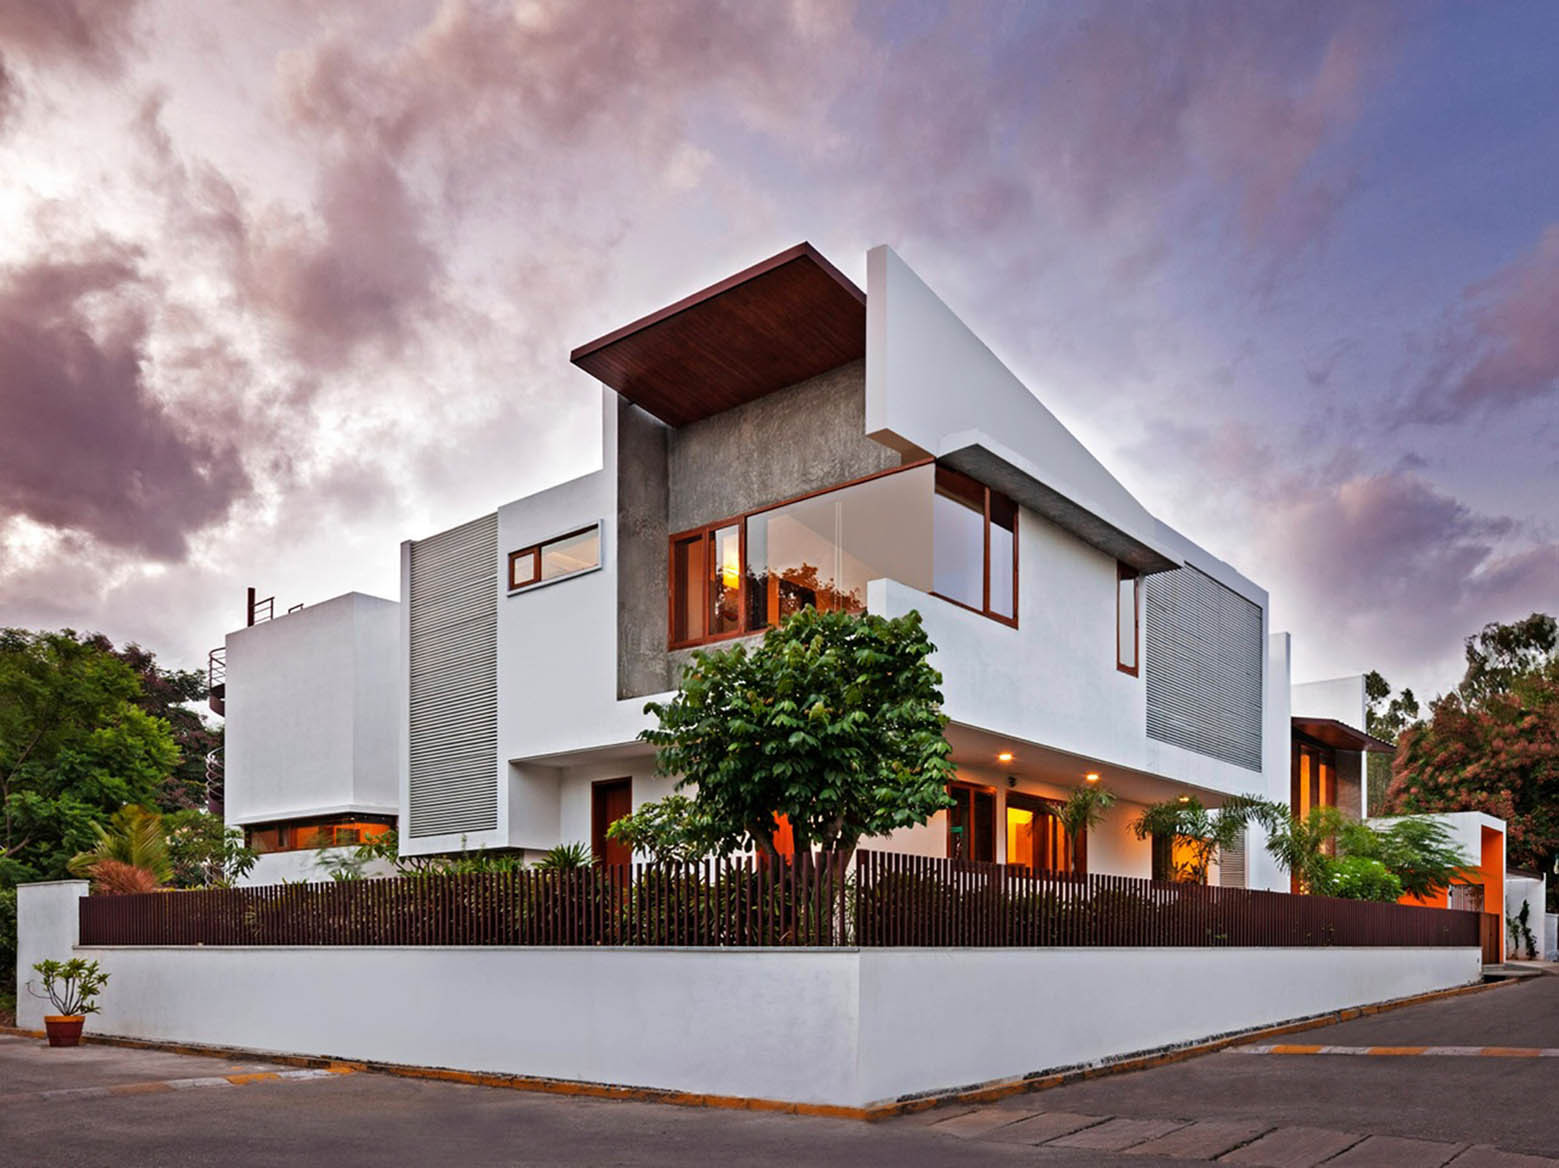 How Much Does An Architect Charge For House Plans – Shuangyi Zhongge